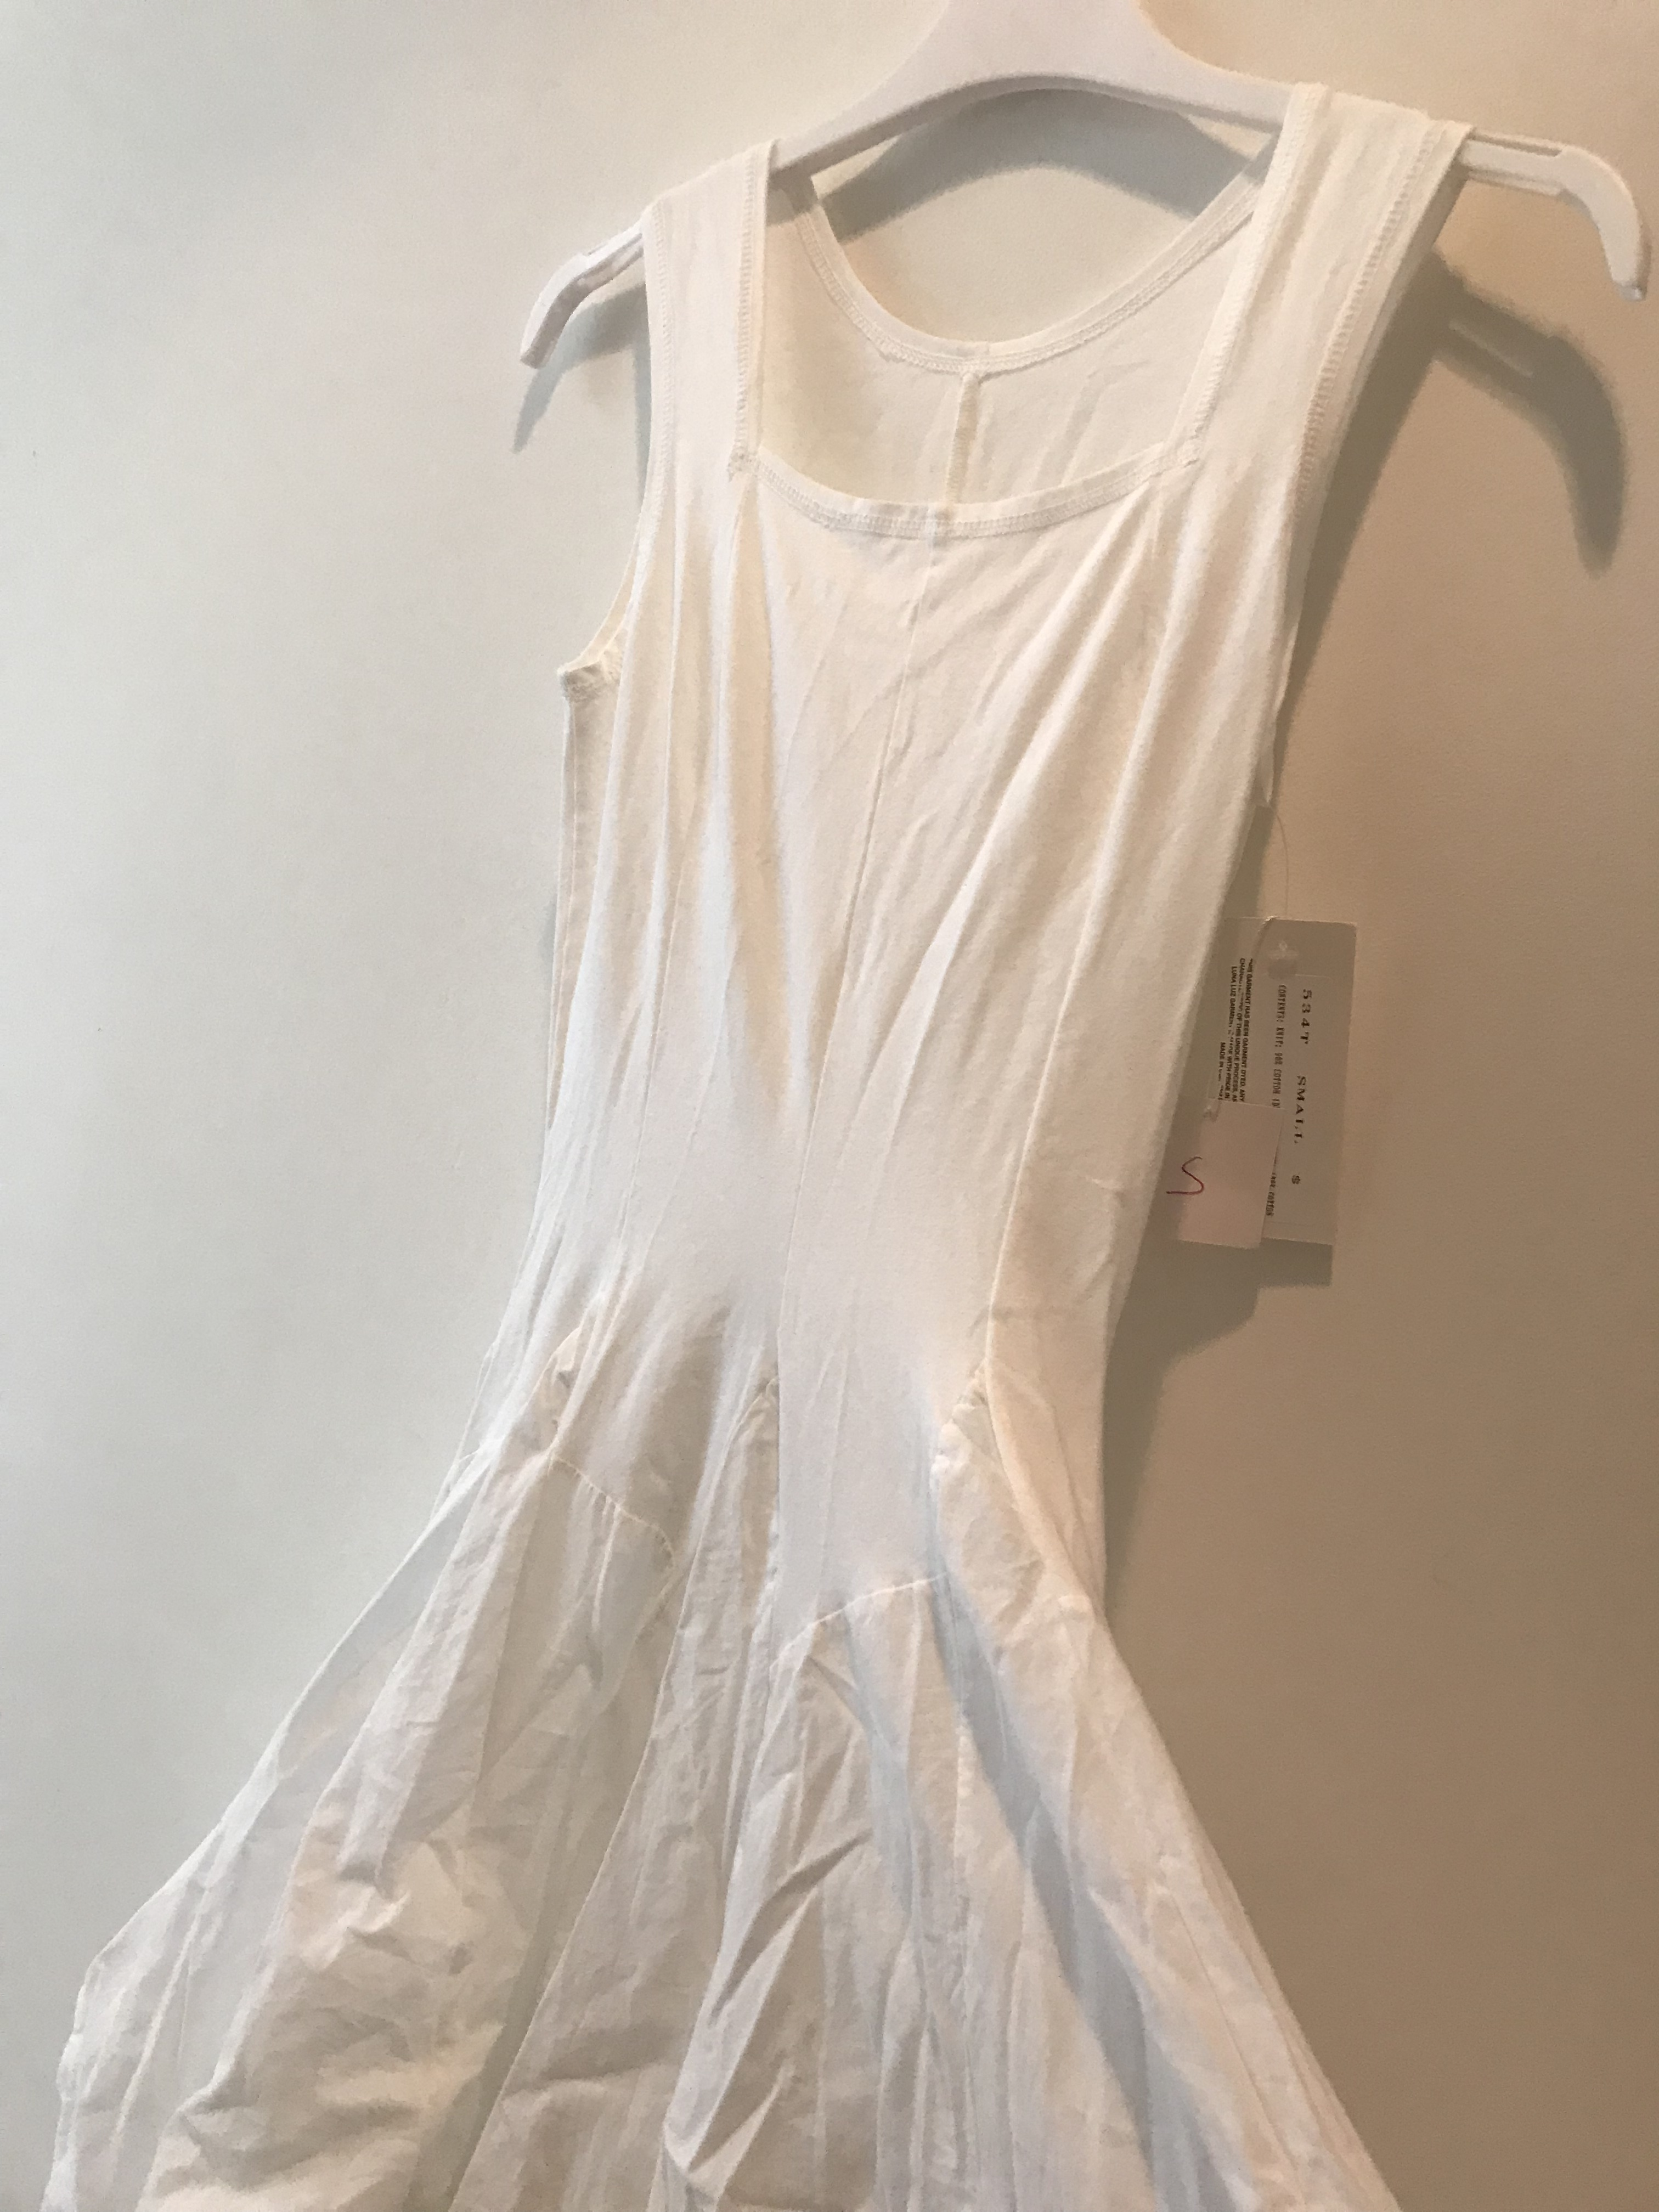 Luna Luz: Romantic Square Neck Tied & Dyed Midi Dress in White (Ships Immed, 1 Left!)